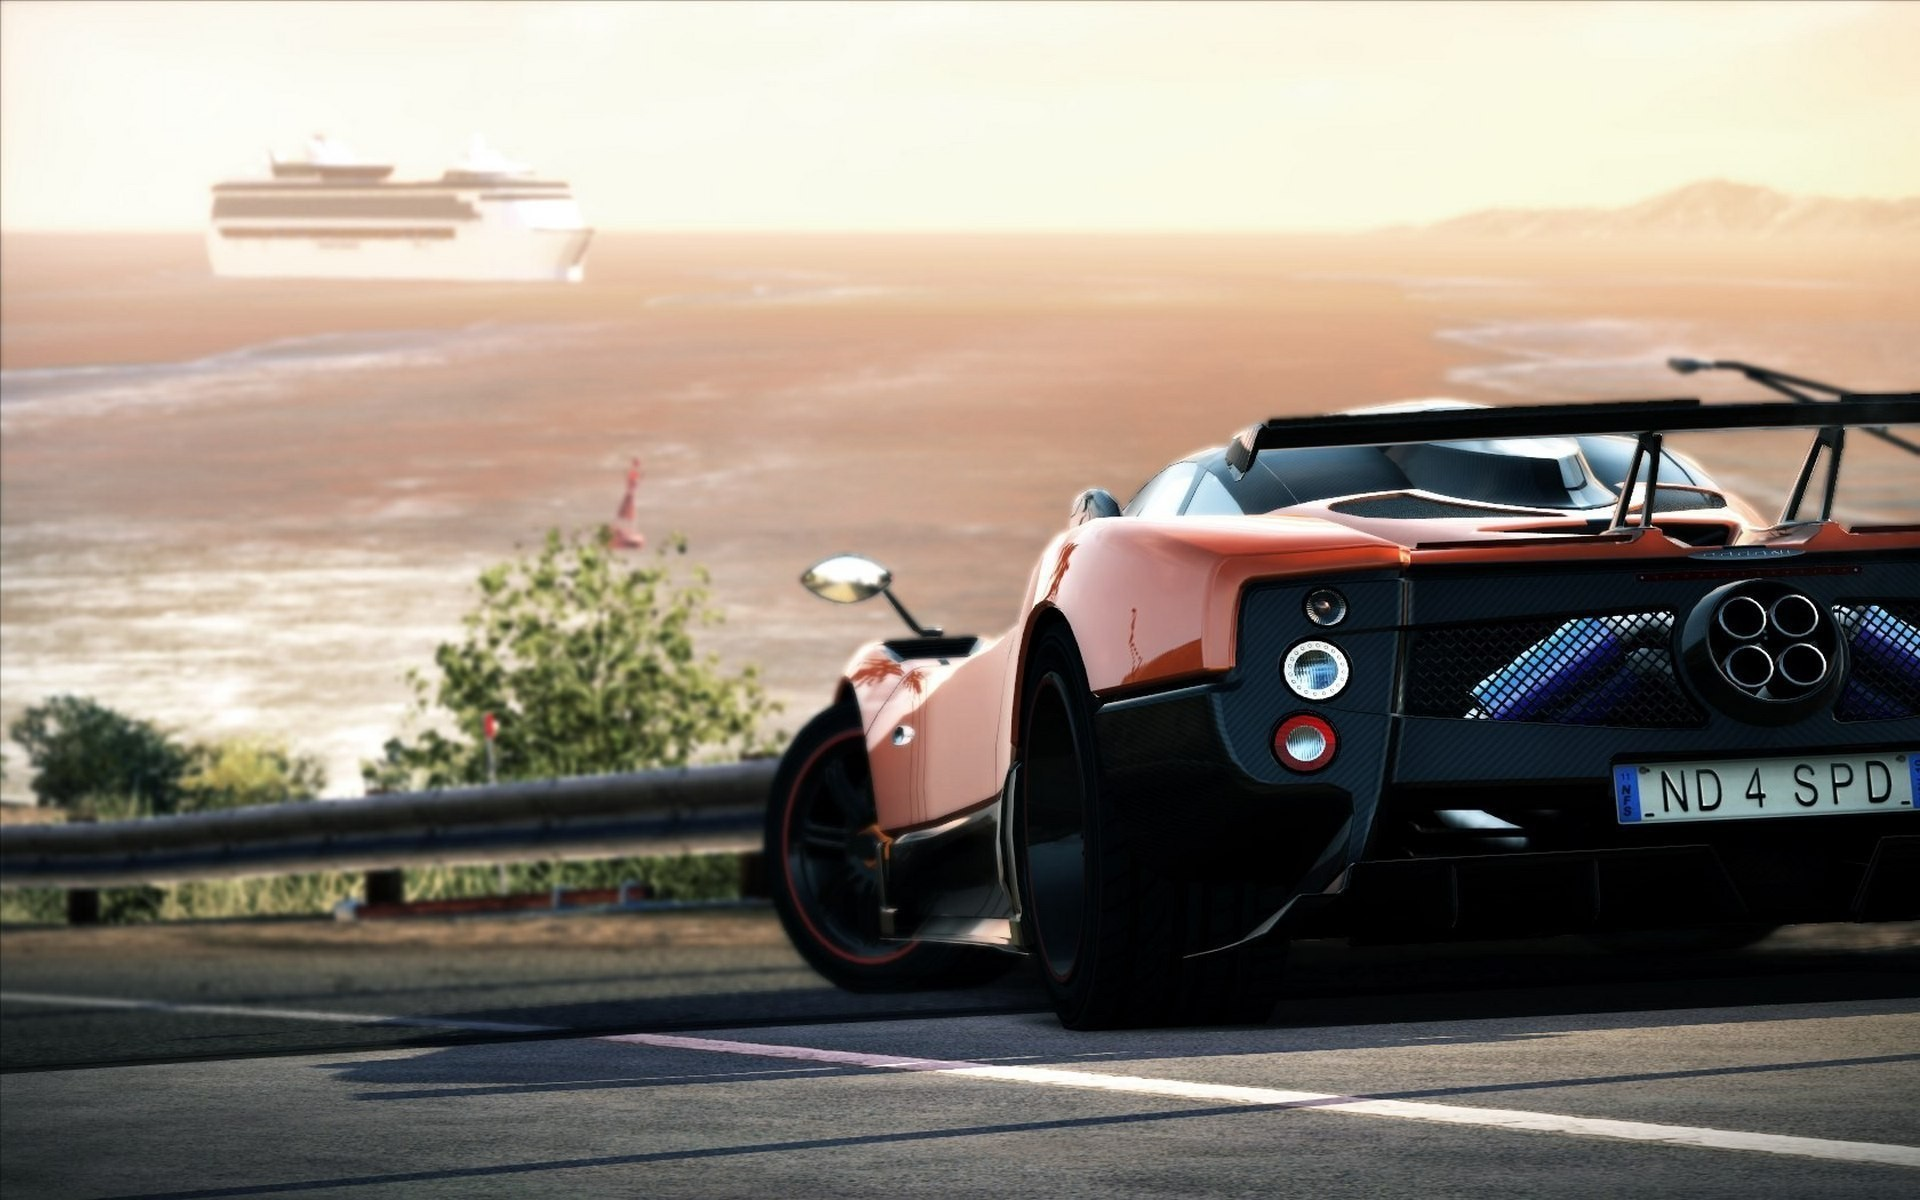 1920x1200 Pagani Zonda Cinque HD Wallpaper | Hintergrund |  | ID:386024 -  Wallpaper Abyss